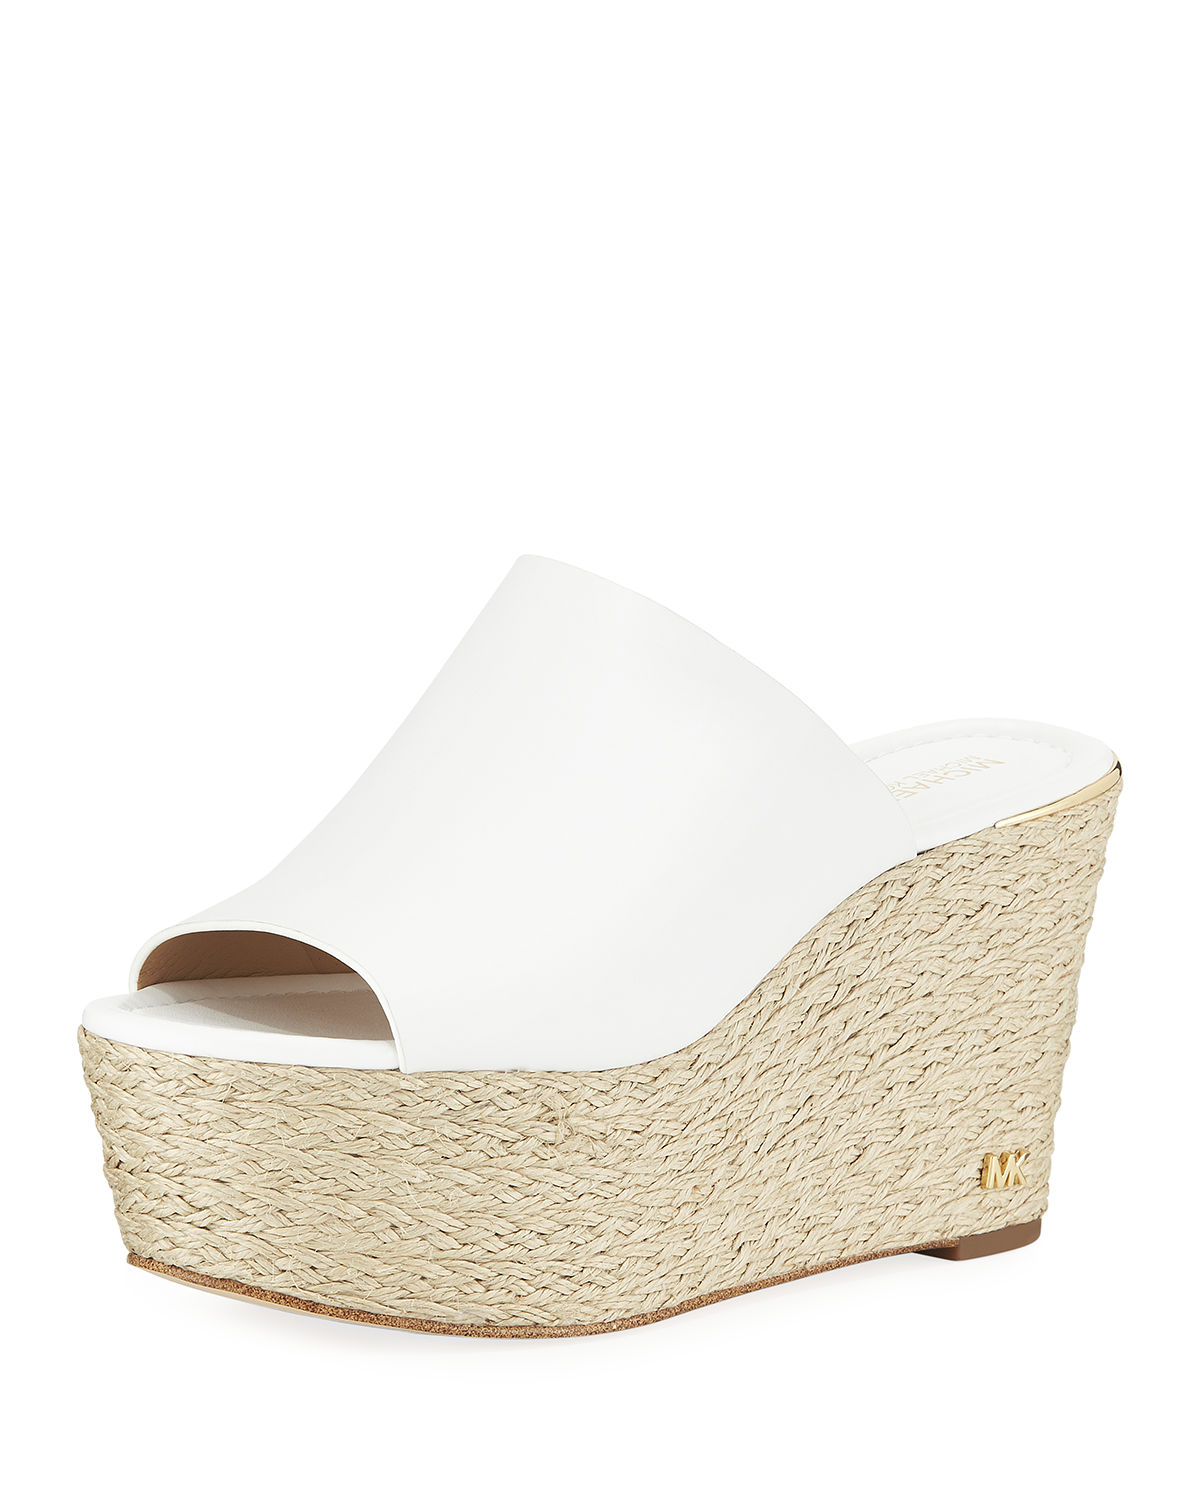 0e687bf0e8 Michael Michael Kors Cunningham Leather Platform Wedge Sandals In Optic  White